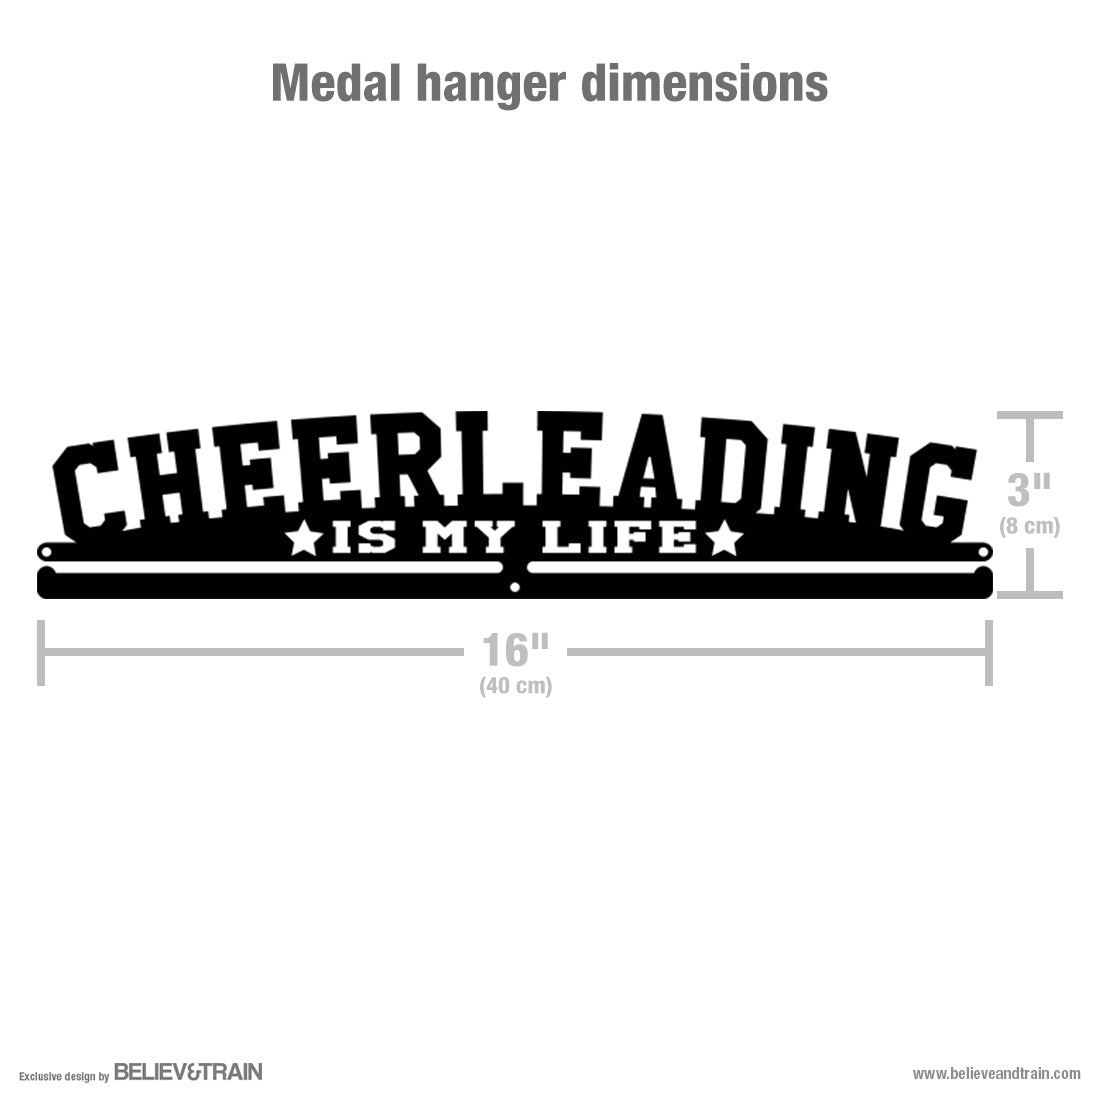 Cheerleading is my Life - Cheerleading Medal Hanger